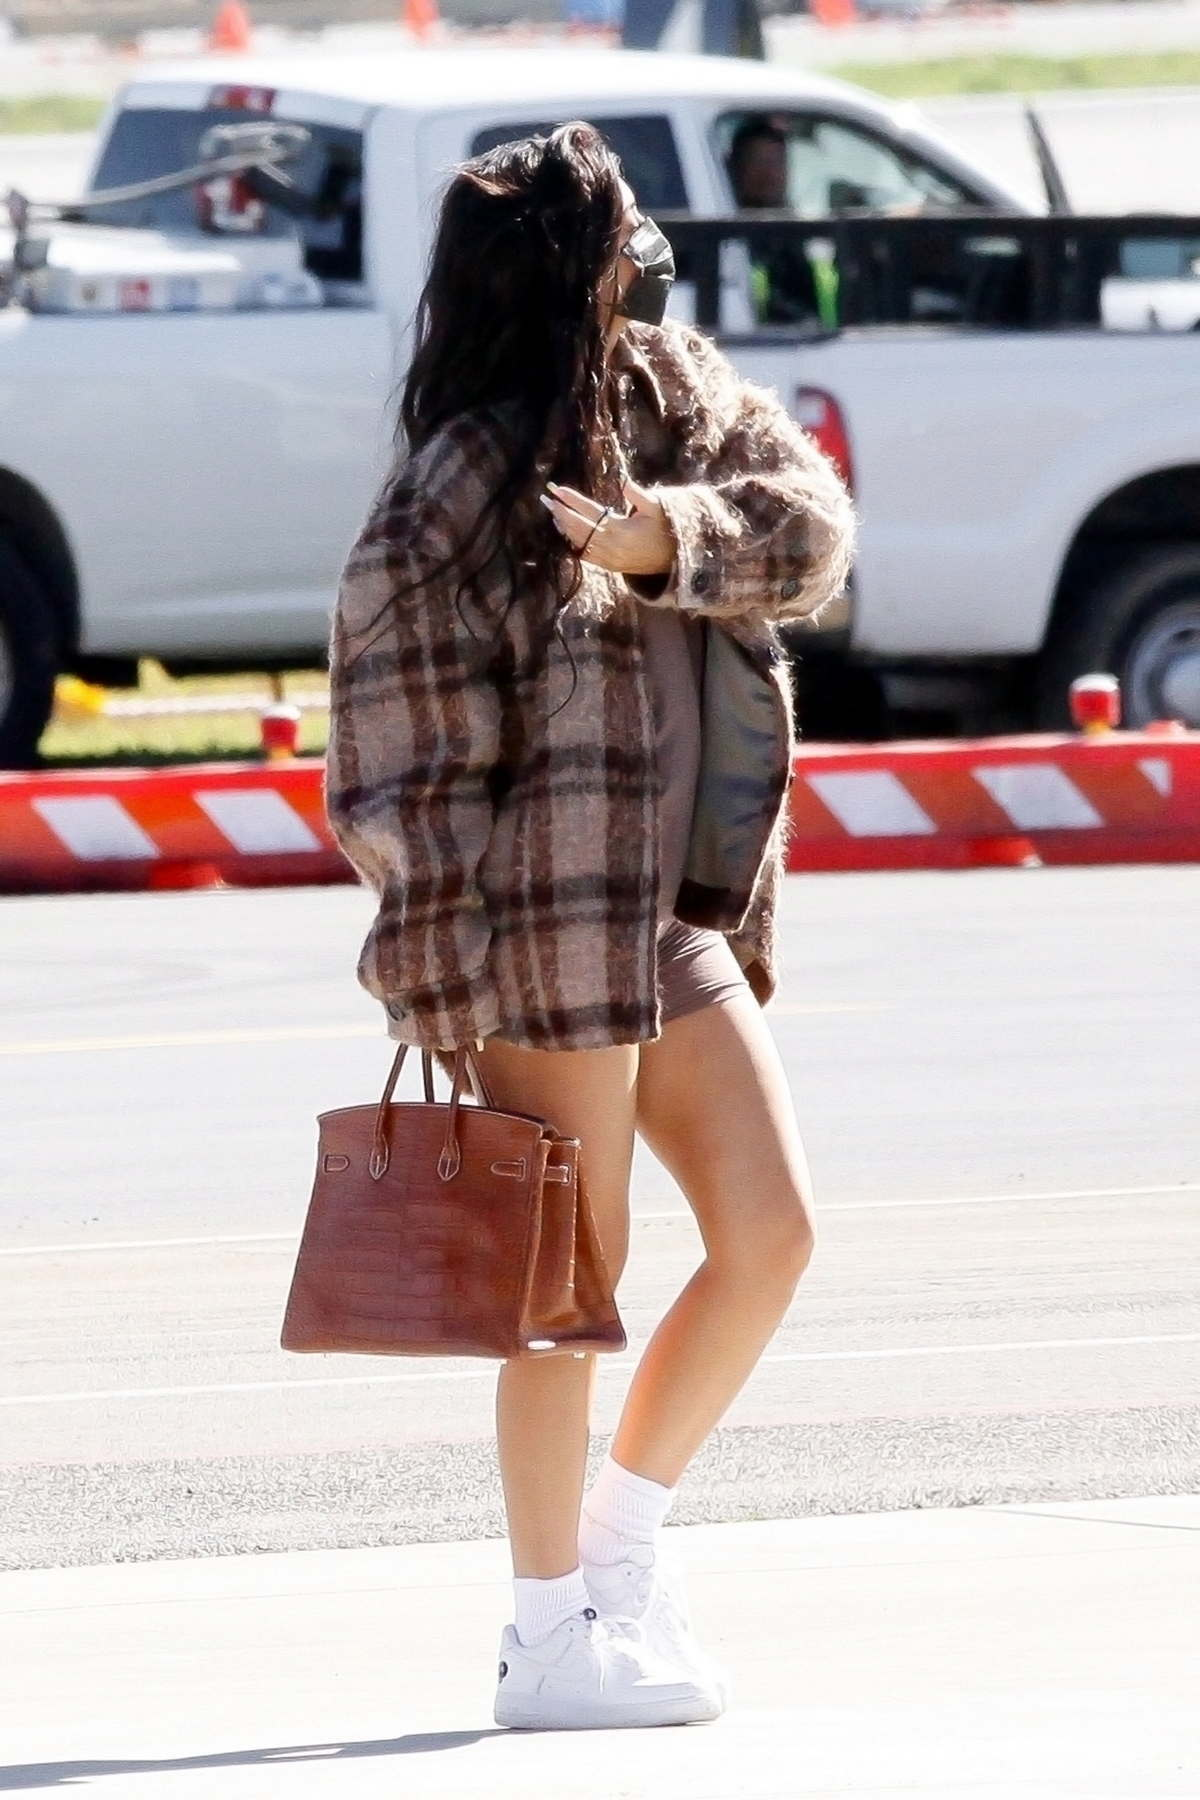 Kylie Jenner puts on a leggy display while boarding a private jet with her daughter Stormi in Los Angeles